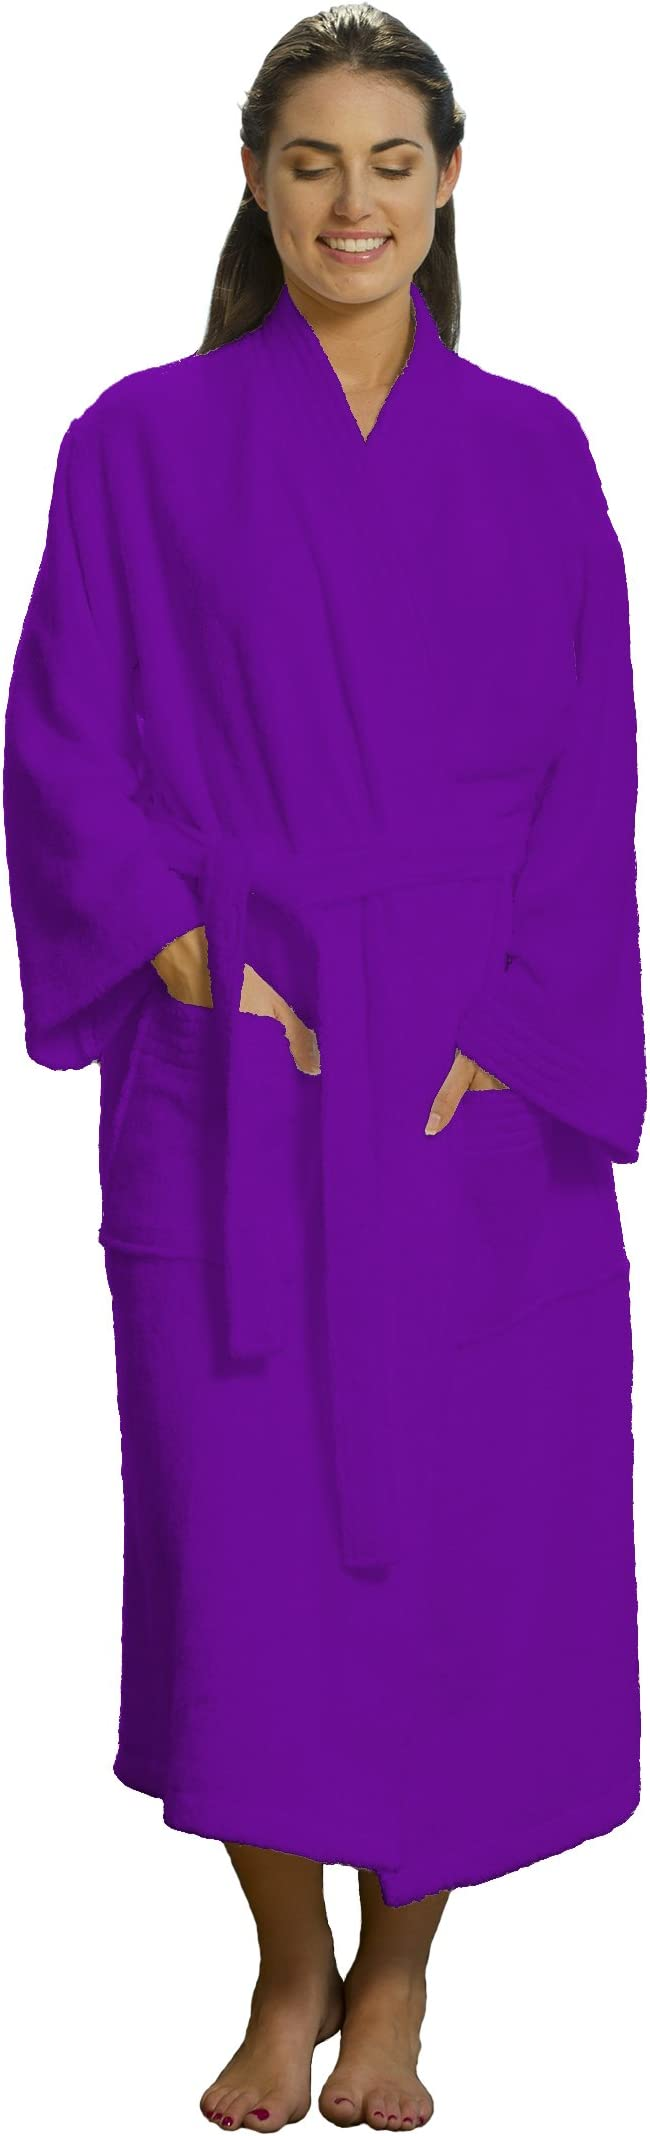 Lilac Housecoat Long Terry Robe Purple Dressing Gown Thick Bathrobe Cotton Terry Velour Bathrobe Lavender Terry Bathrobe Wrap Bathrobe